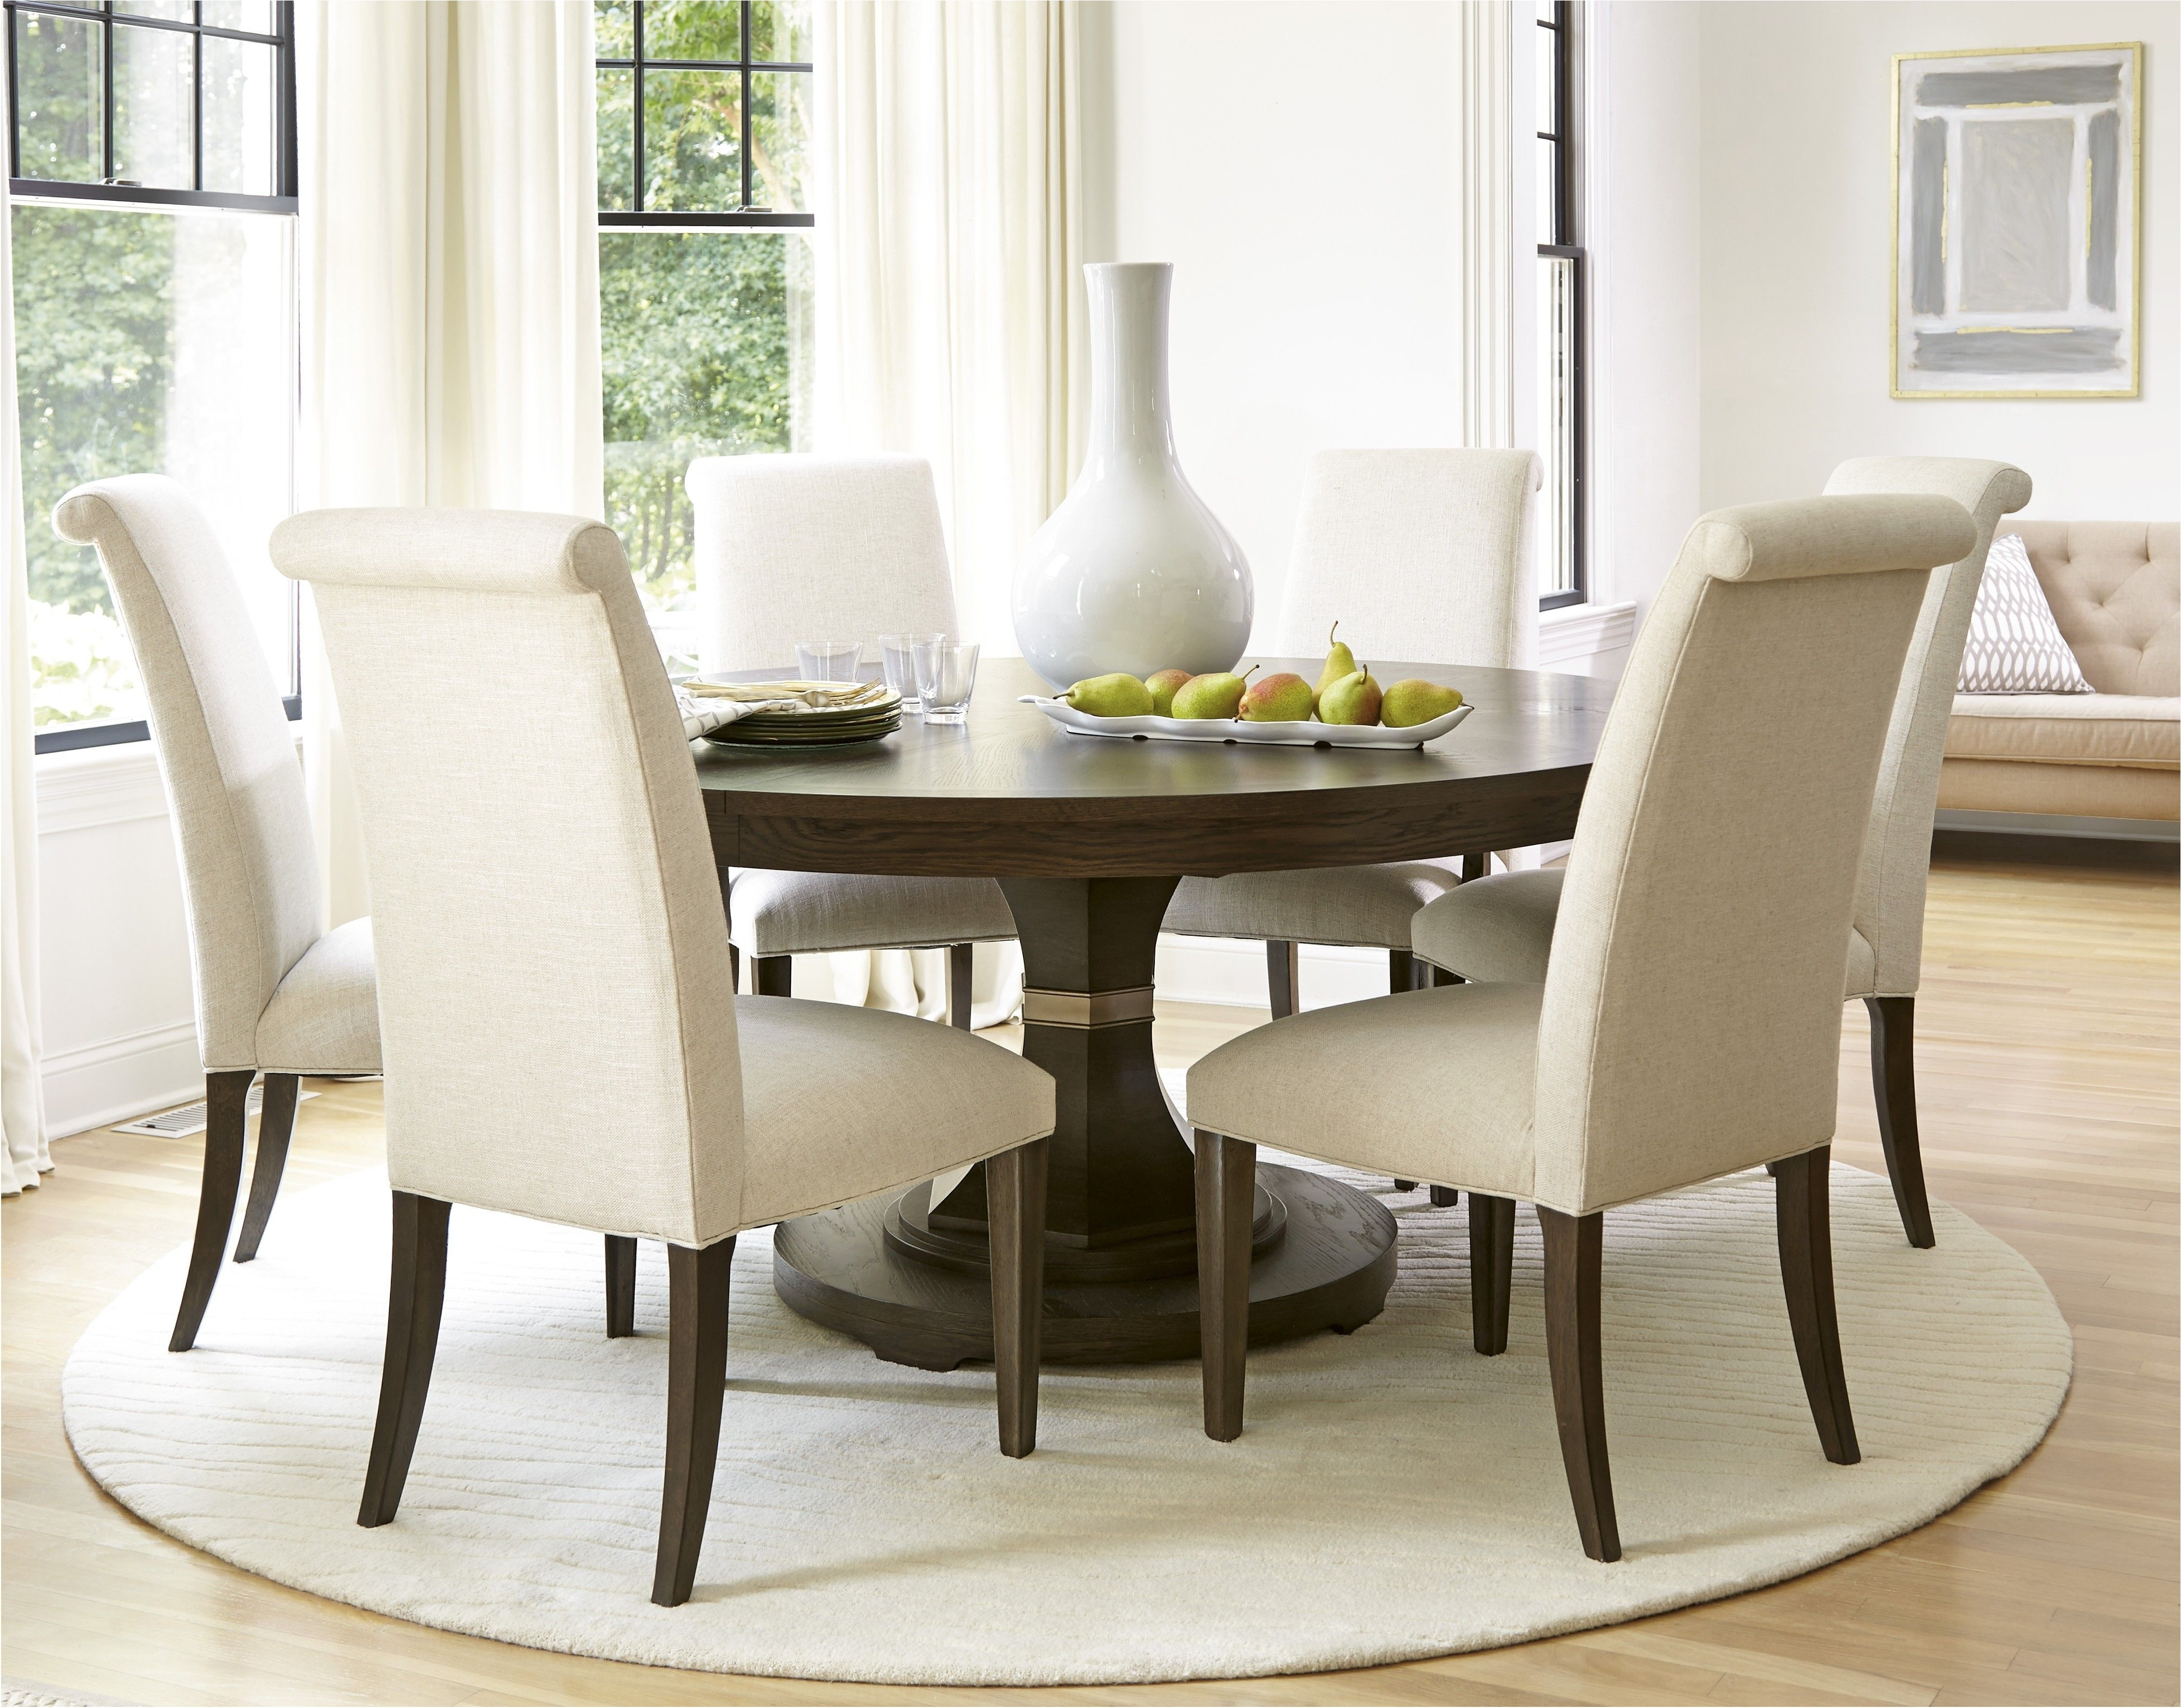 Most Current Extraordinary Dining Room Furniture Glass Round Kitchen Table Decor Intended For Small Round Dining Table With 4 Chairs (View 8 of 25)